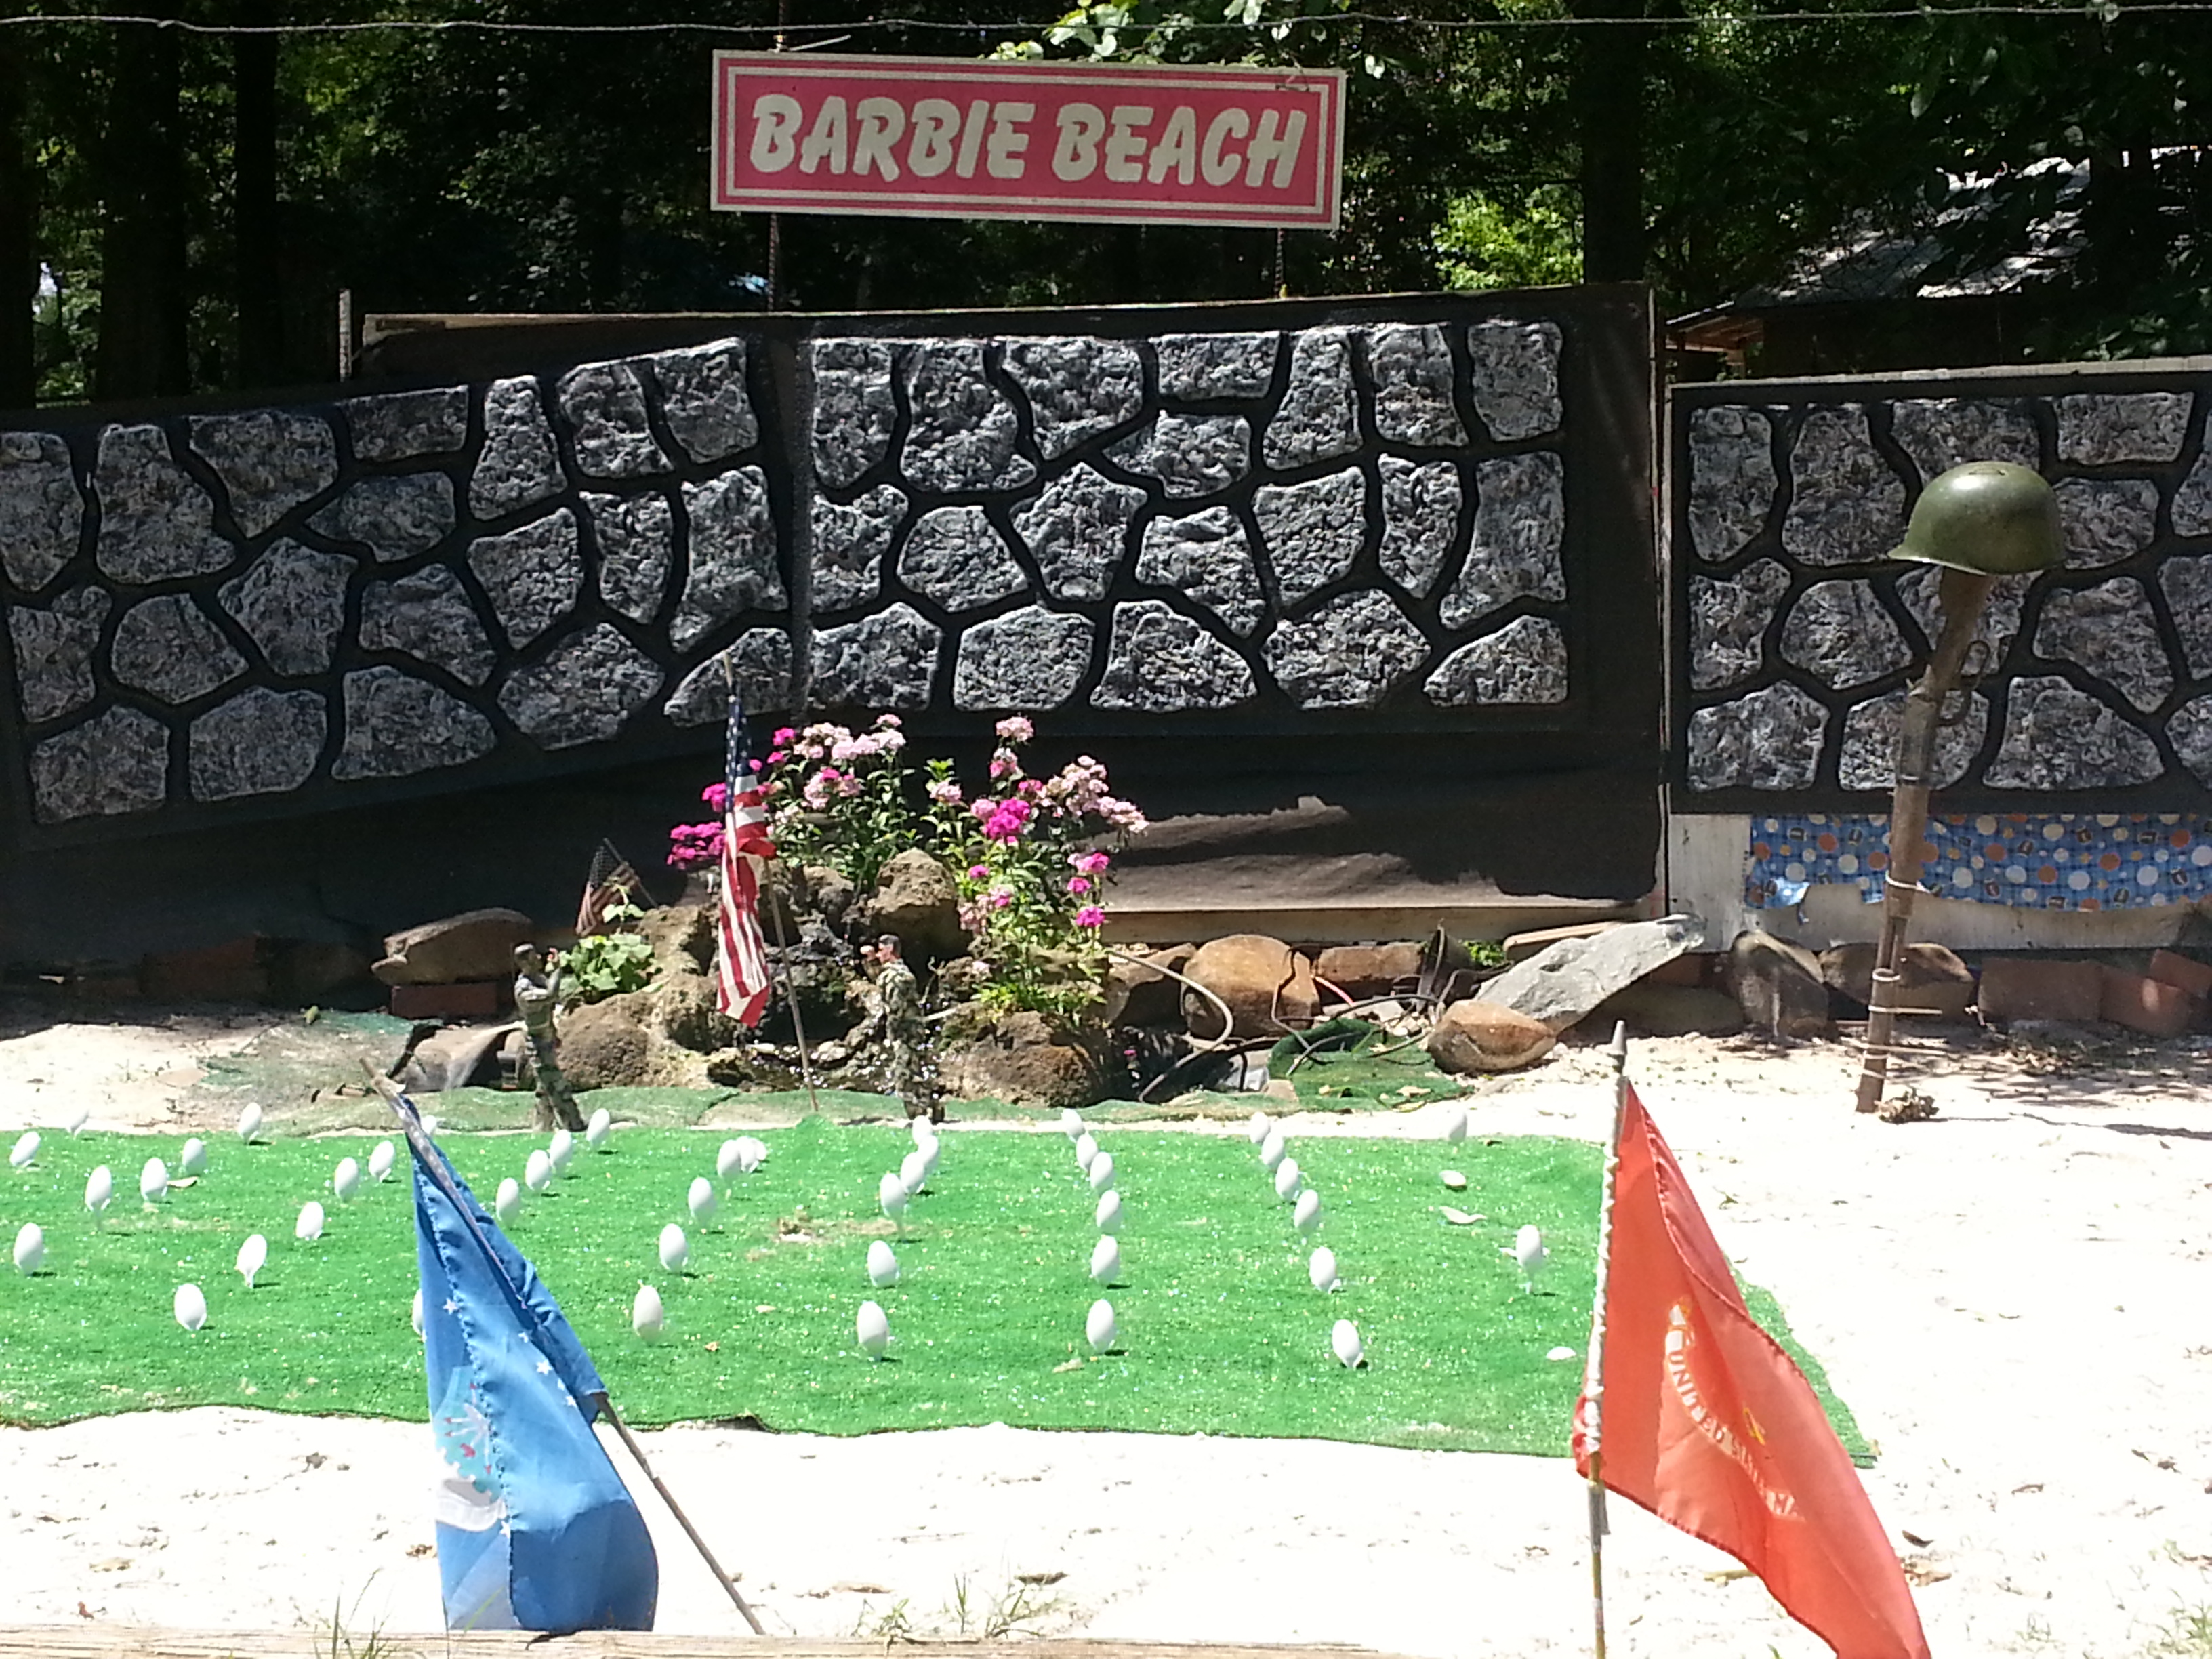 Barbie Beach